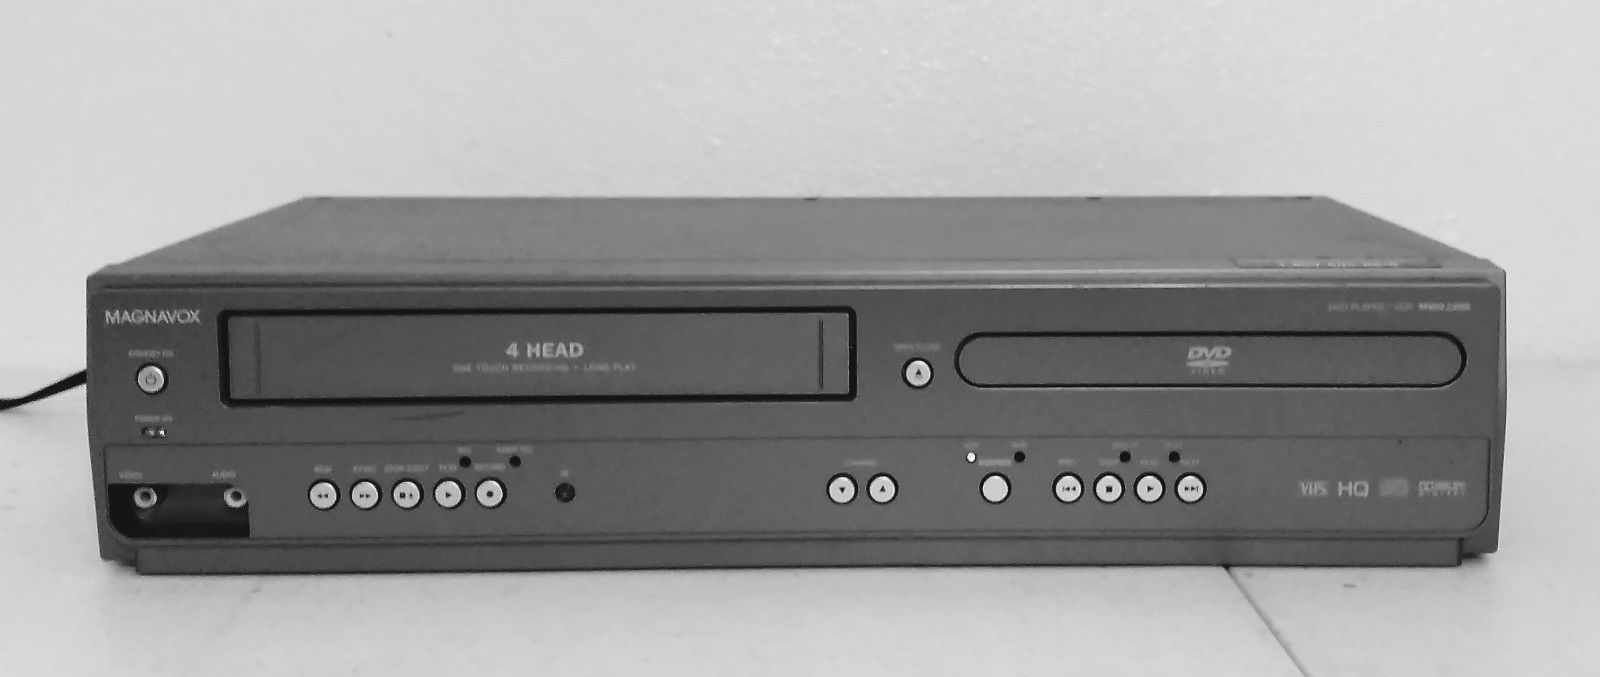 magnavox mwd2206 dvd vcr combo player vhs and 28 similar items rh bonanza com User Training Kindle Fire User Guide